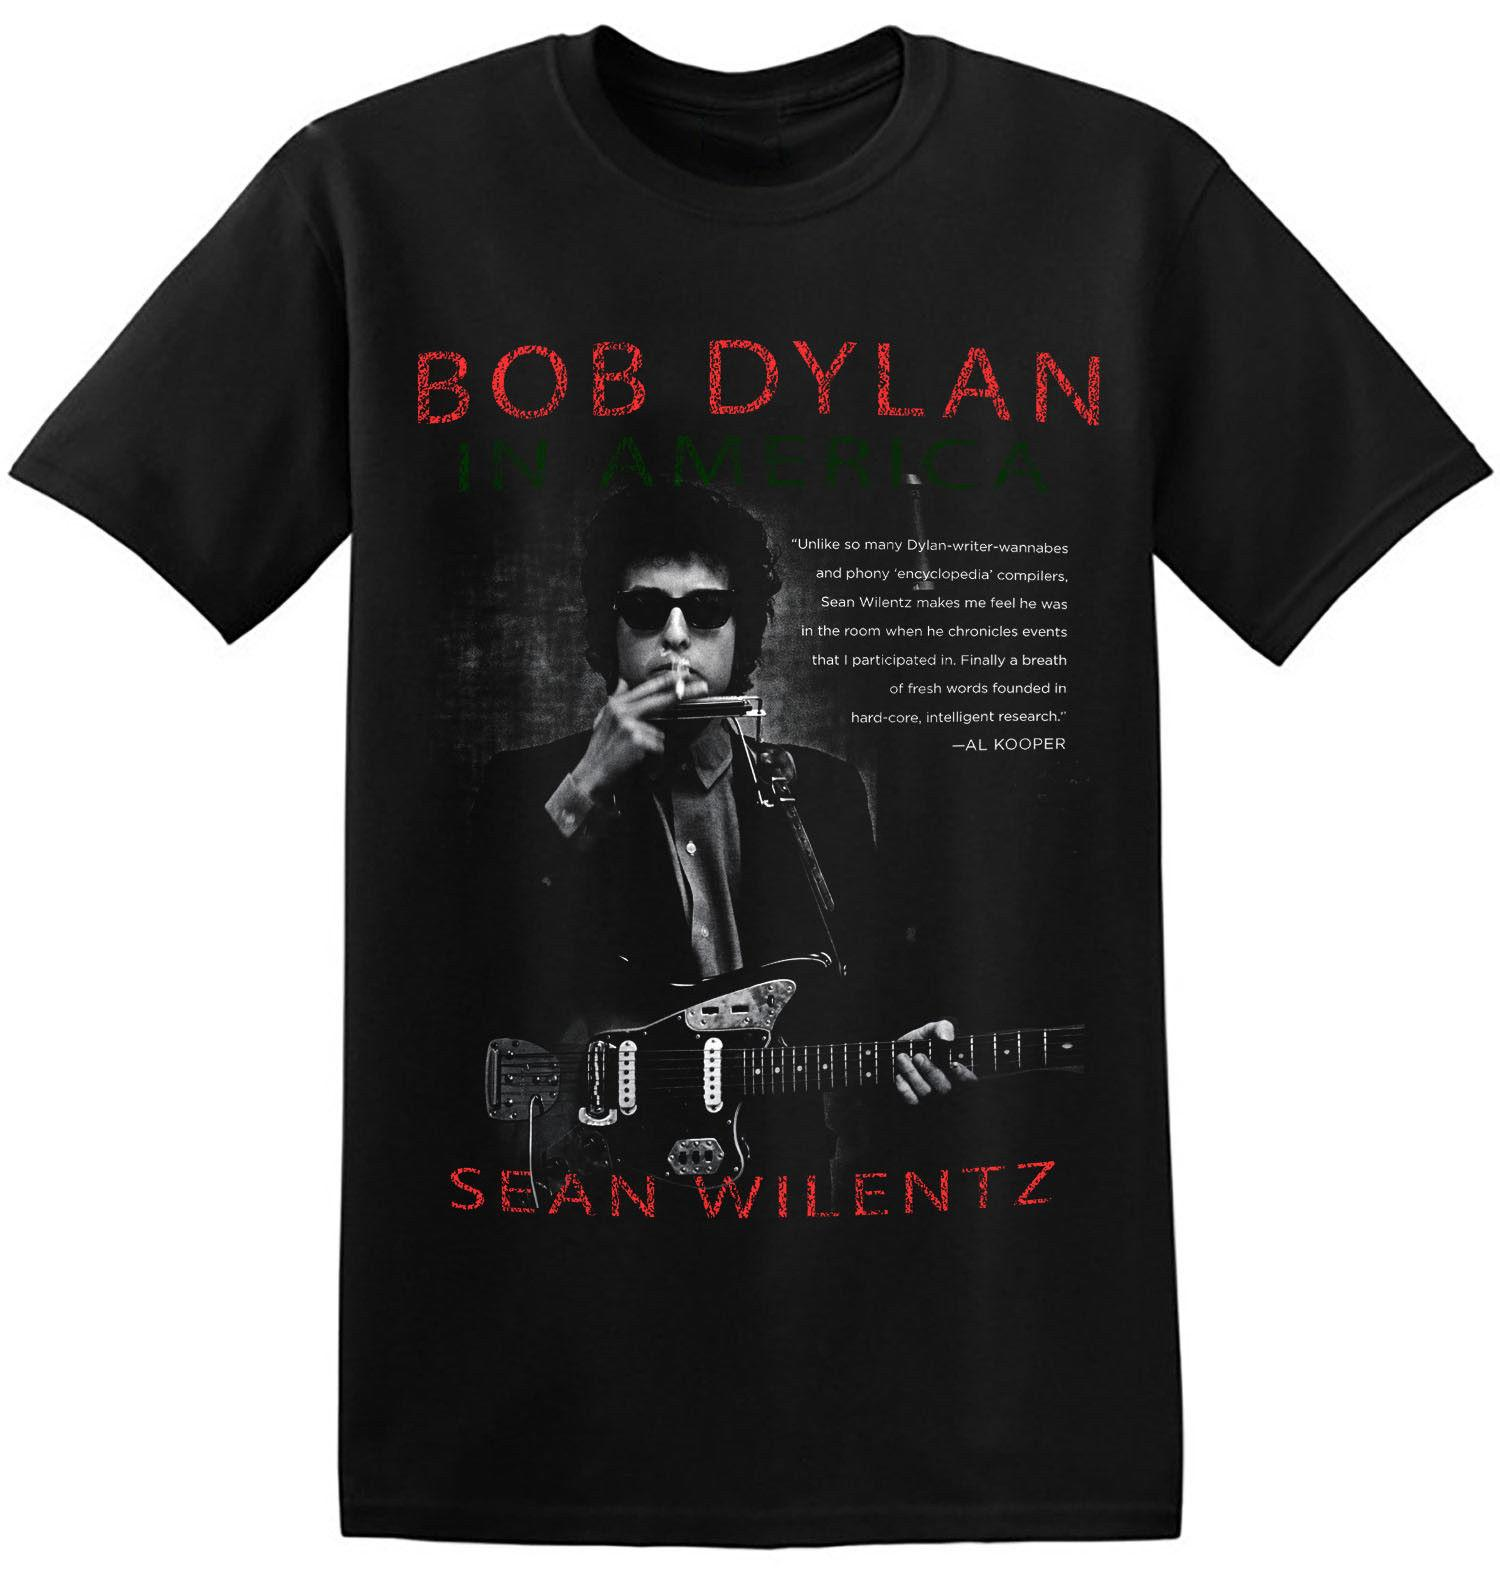 Bob Dylan T Shirt Vintage Rock Band New Graphic Print Women Tee Shirt 1 A  023 Funny Tees Shirts MENS T SHIRT Printed Men T Shirt Classic Purchase T  Shirts ...